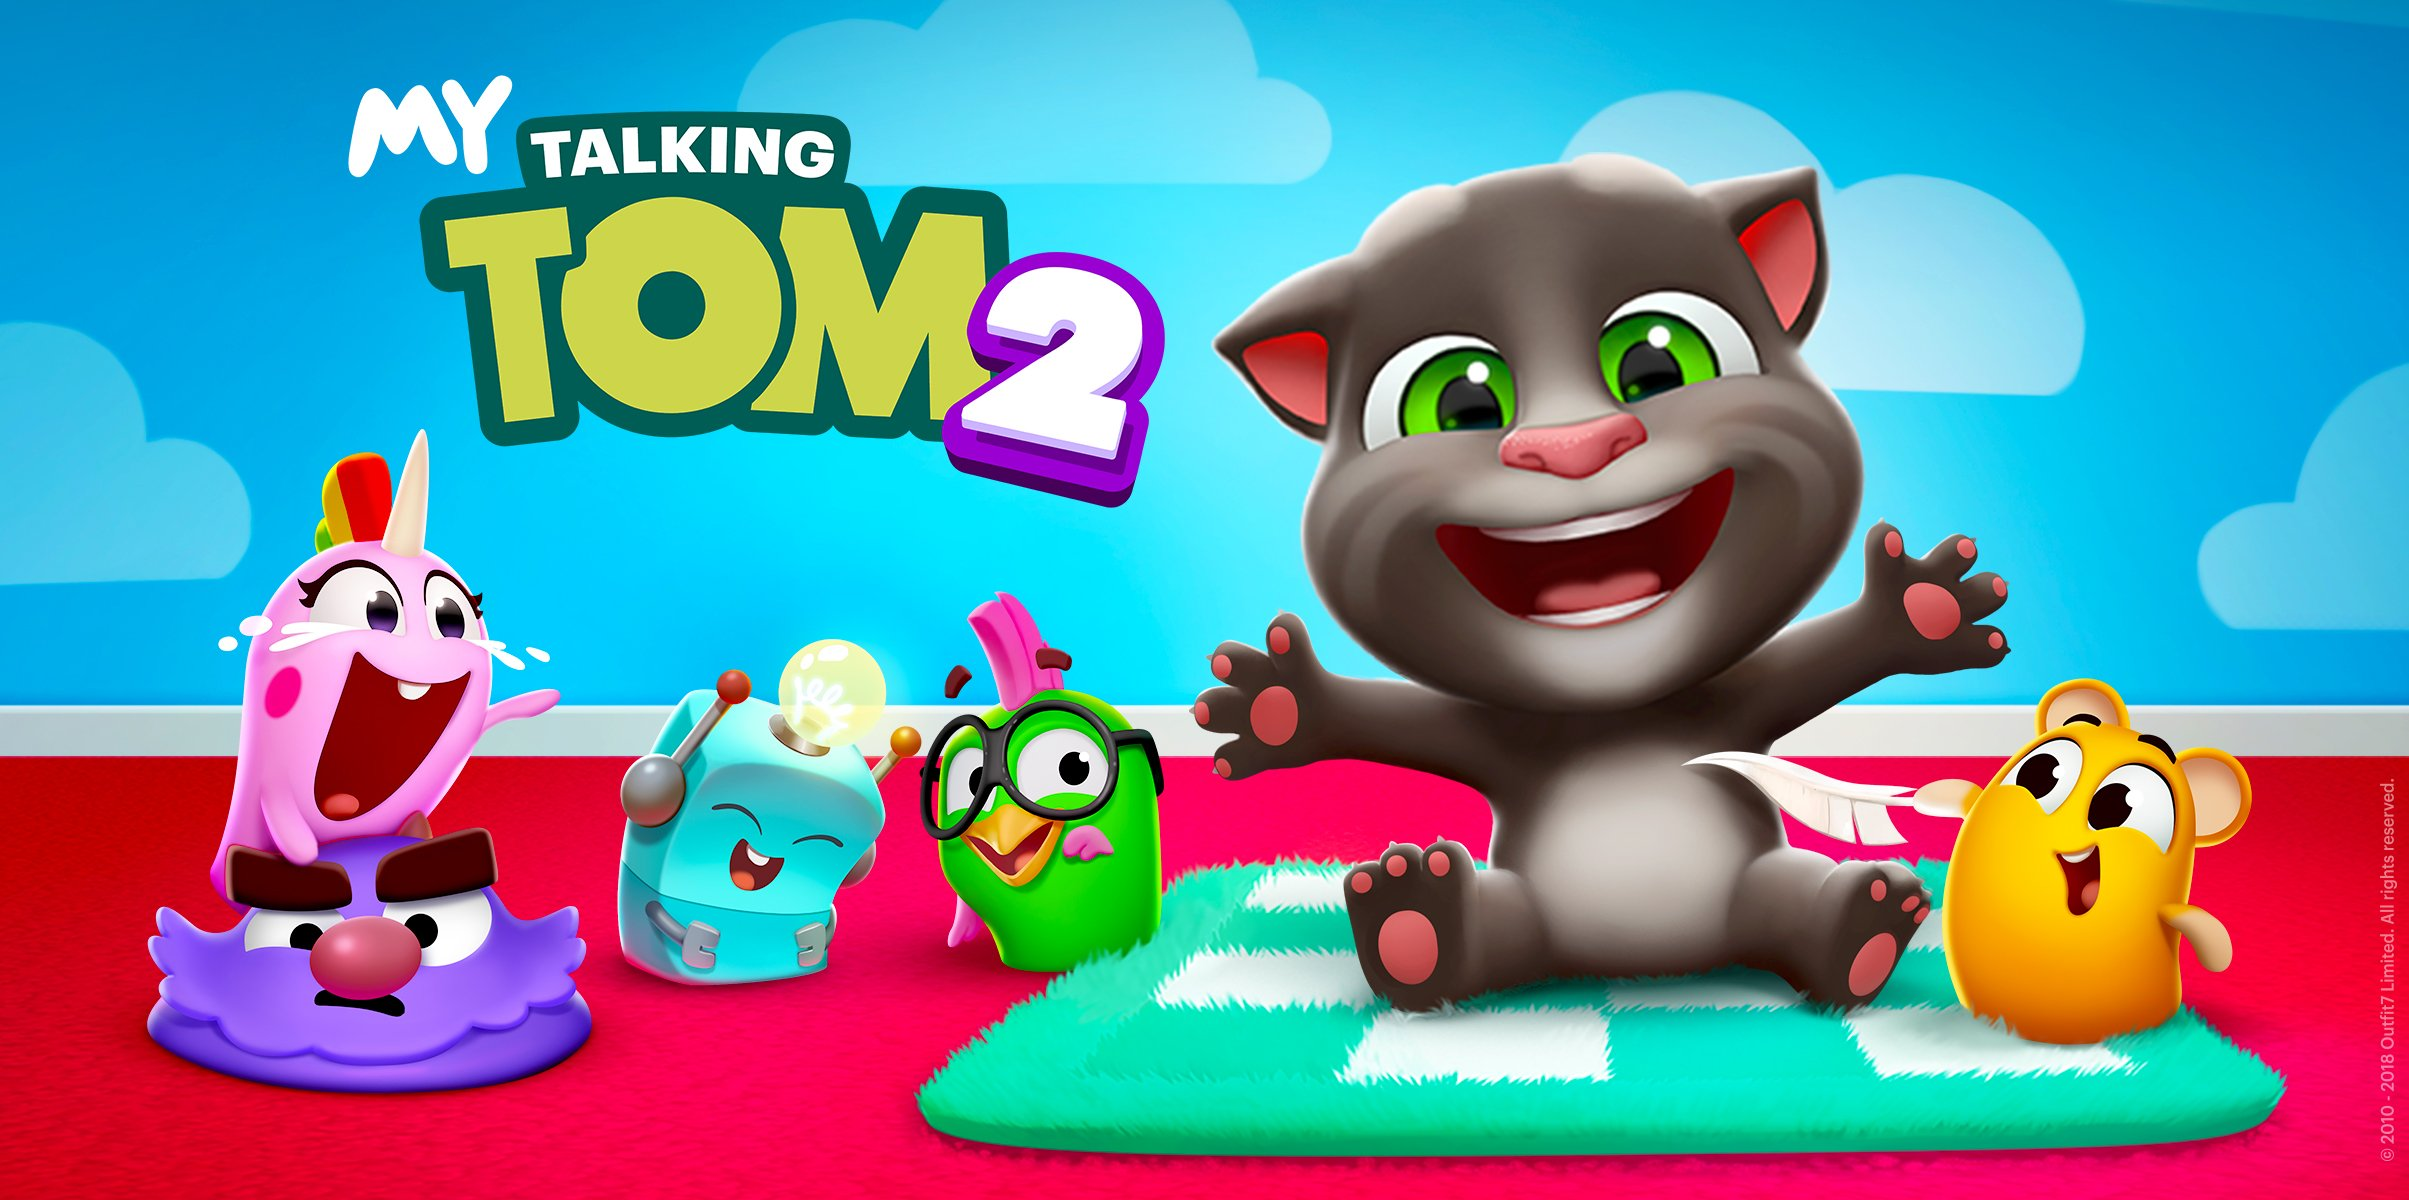 Outfit7 Releases the Most Interactive Virtual Friend Mobile Game Ever – My Talking Tom 2